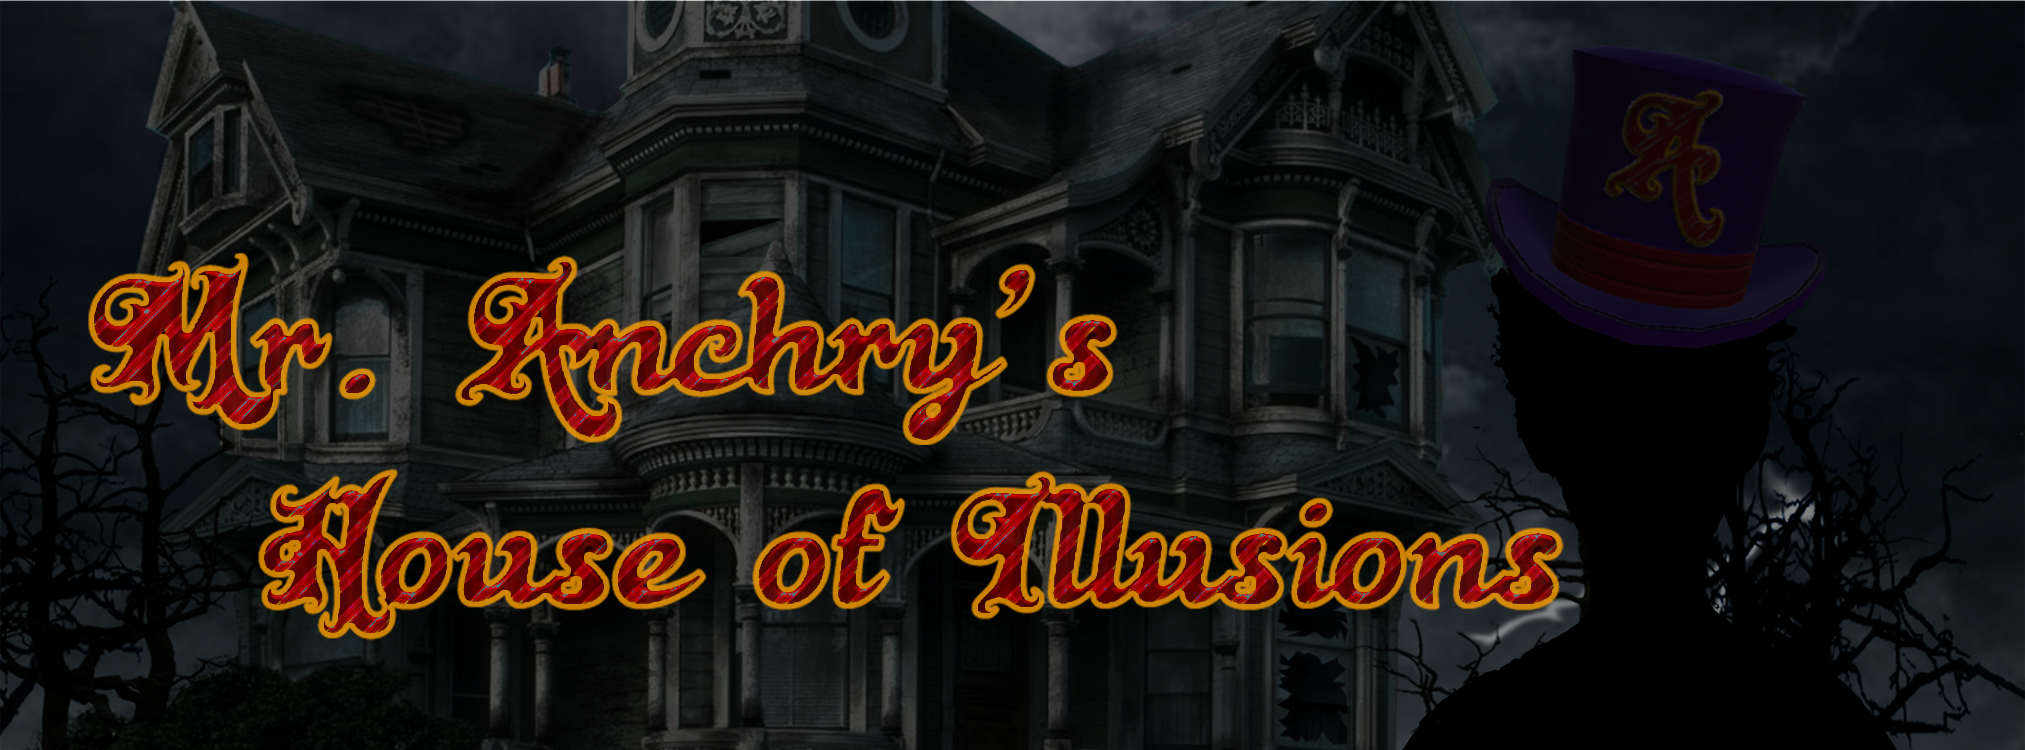 Mr Anchry's House of Illusions